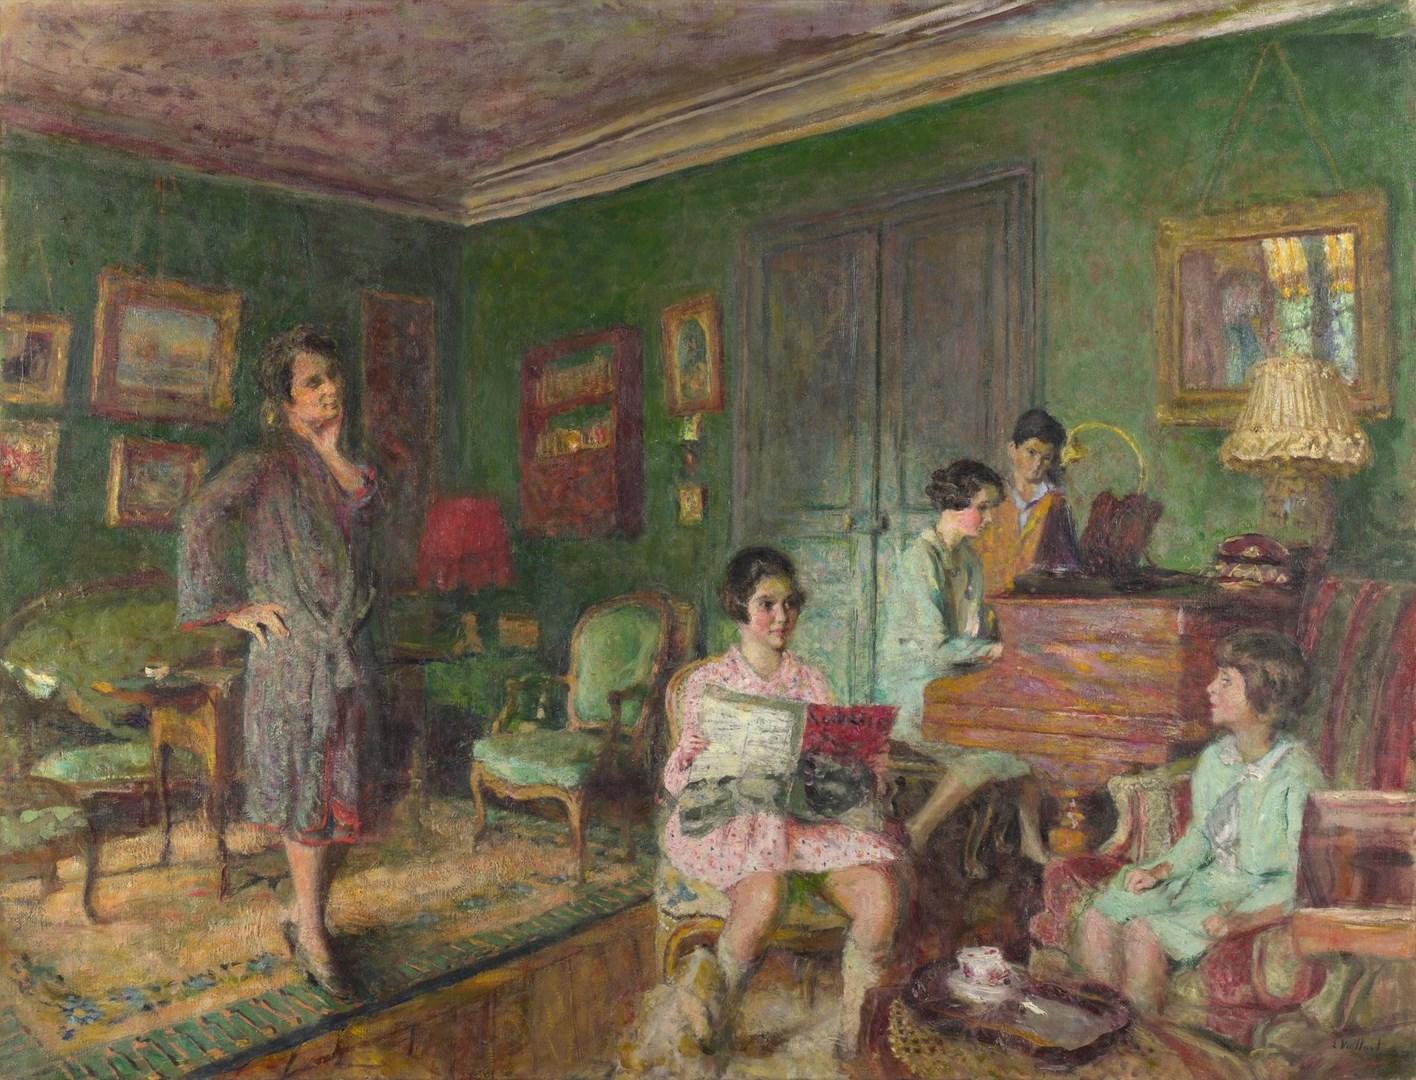 Madame André Wormser and her Children by Edouard Vuillard